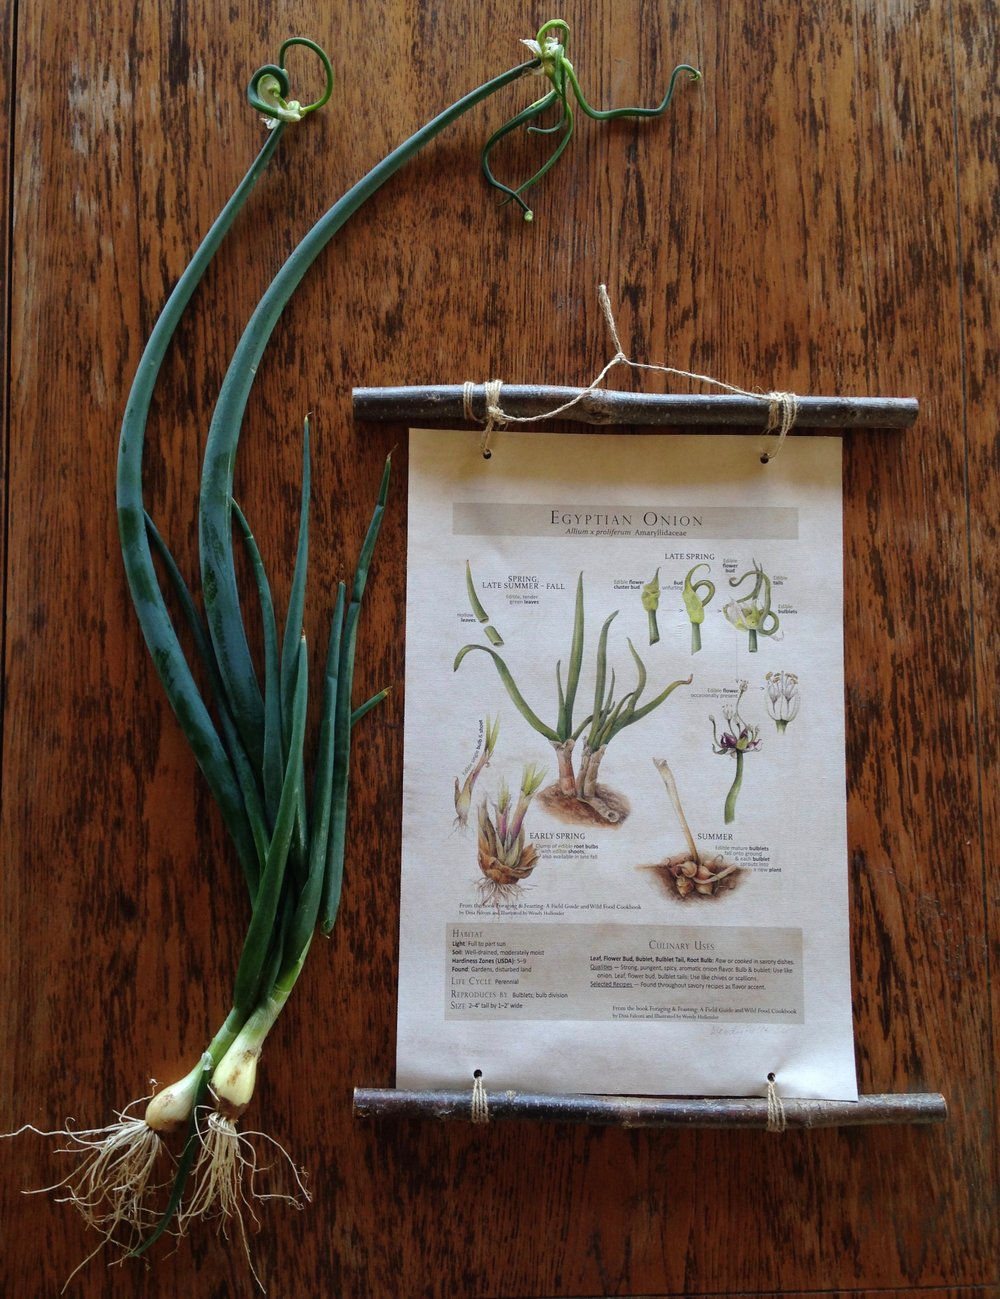 Egyptian Onions - Harvest Bulbs, Stems, and Flower topsPlant ID Pages from the book Foraging & Feasting; A Field Guide and Wild Food Cookbookwww.botanicalartspress.com